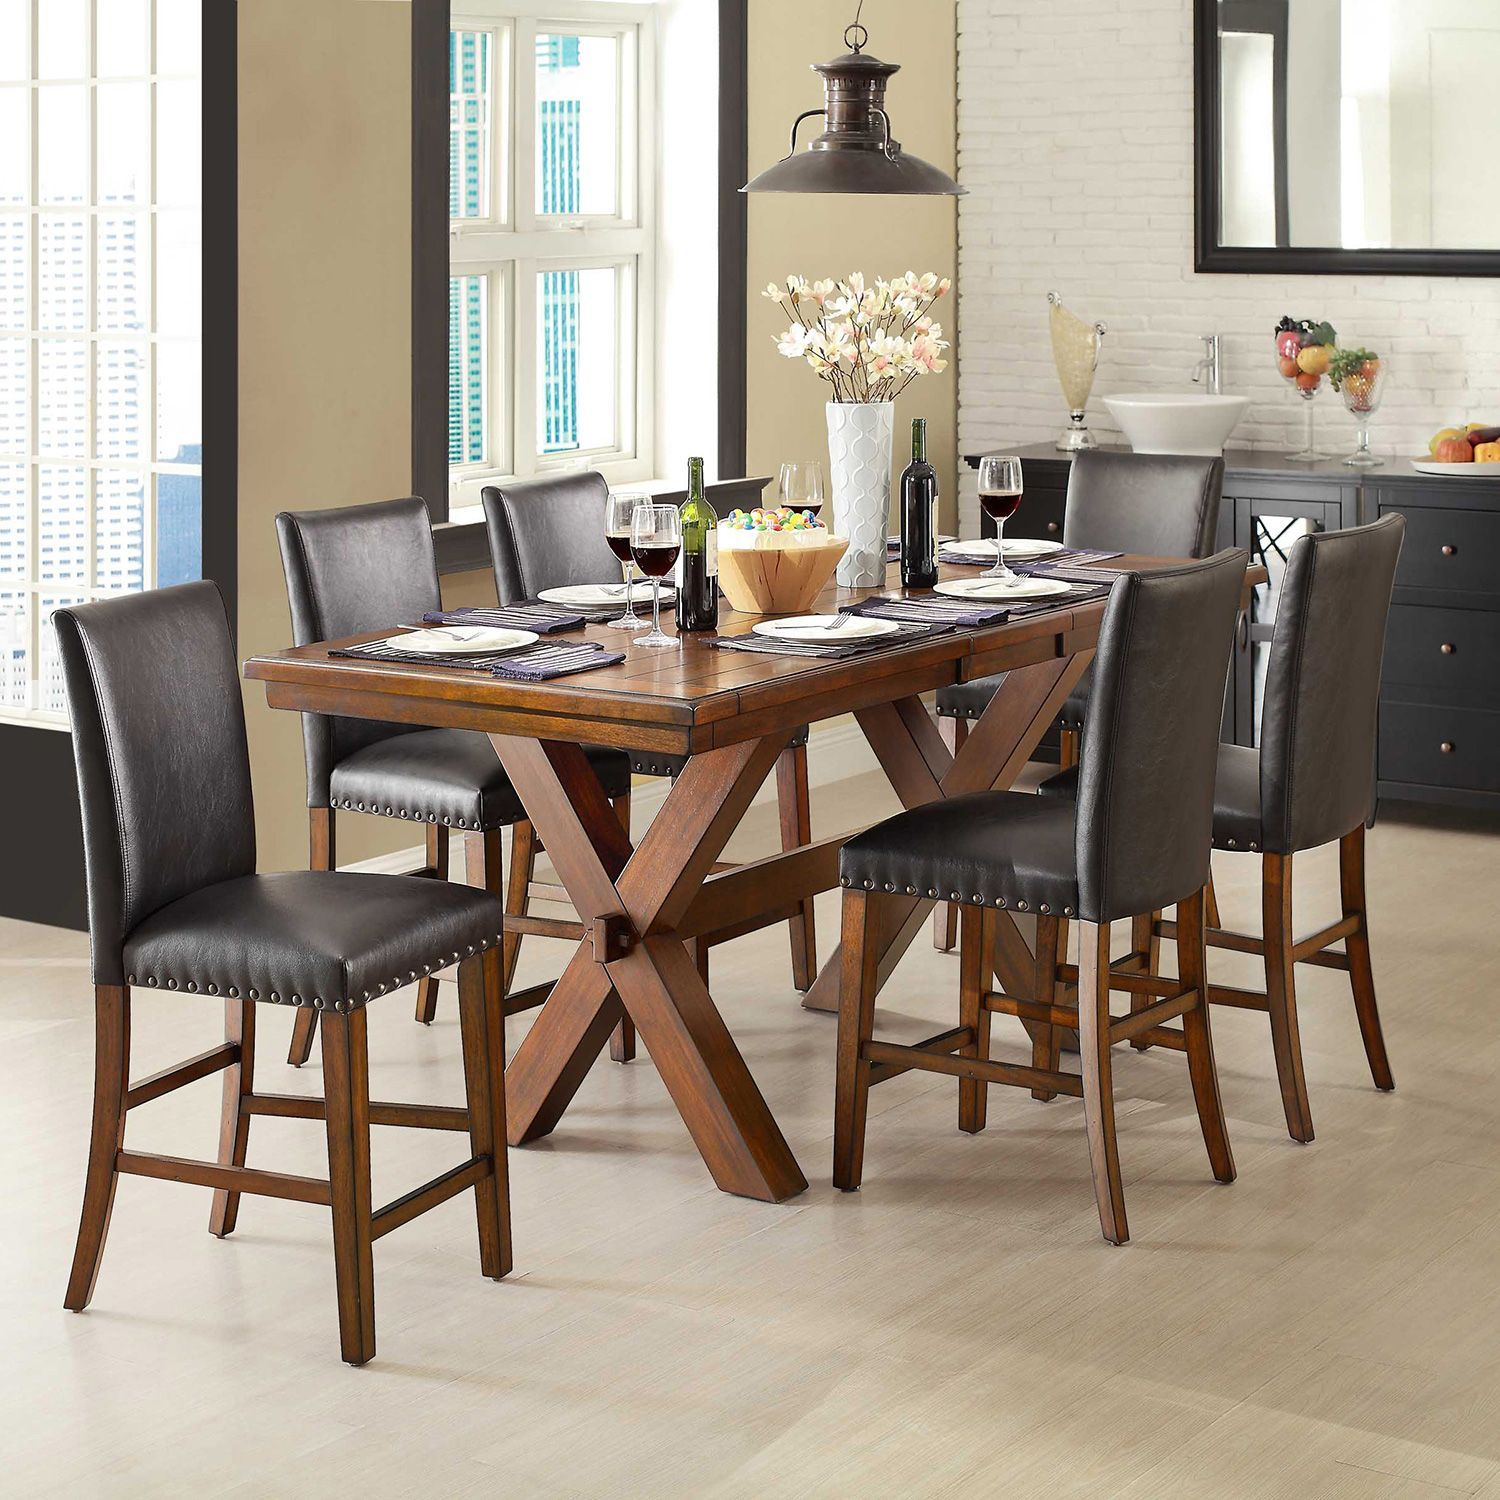 Crossridge Counter Height Dining Set 7 Pc Sam S Club Counter Height Dining Sets Glass Dining Room Table Dining Room Table